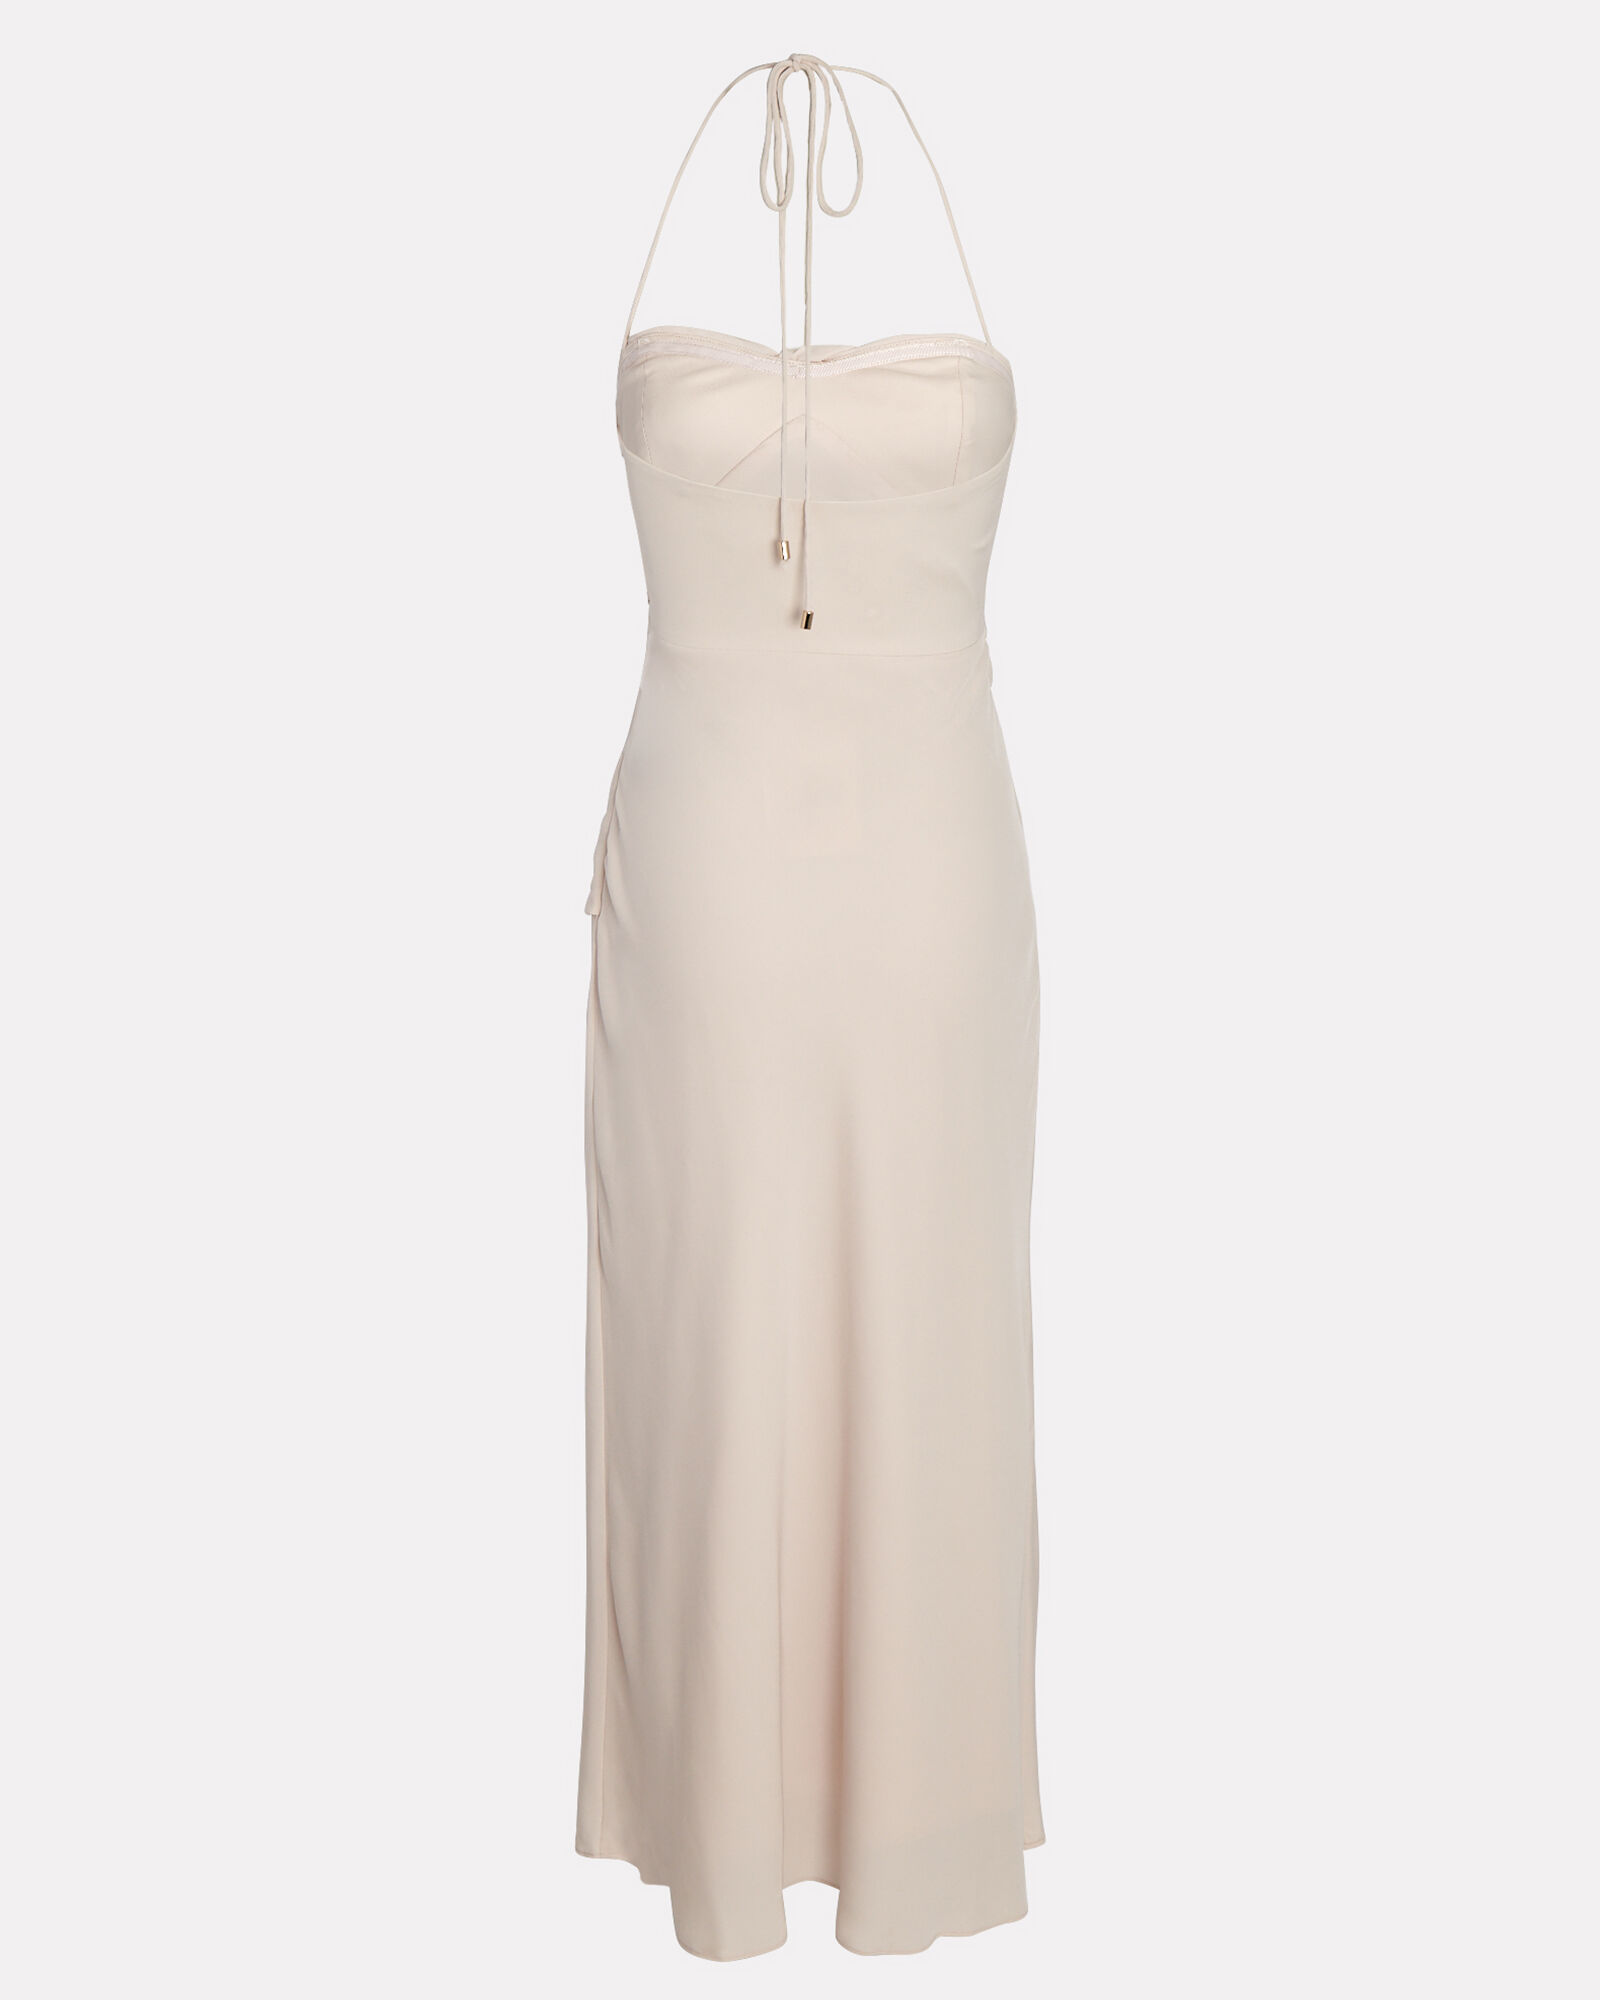 Parlour Tie-Front Midi Dress, IVORY, hi-res